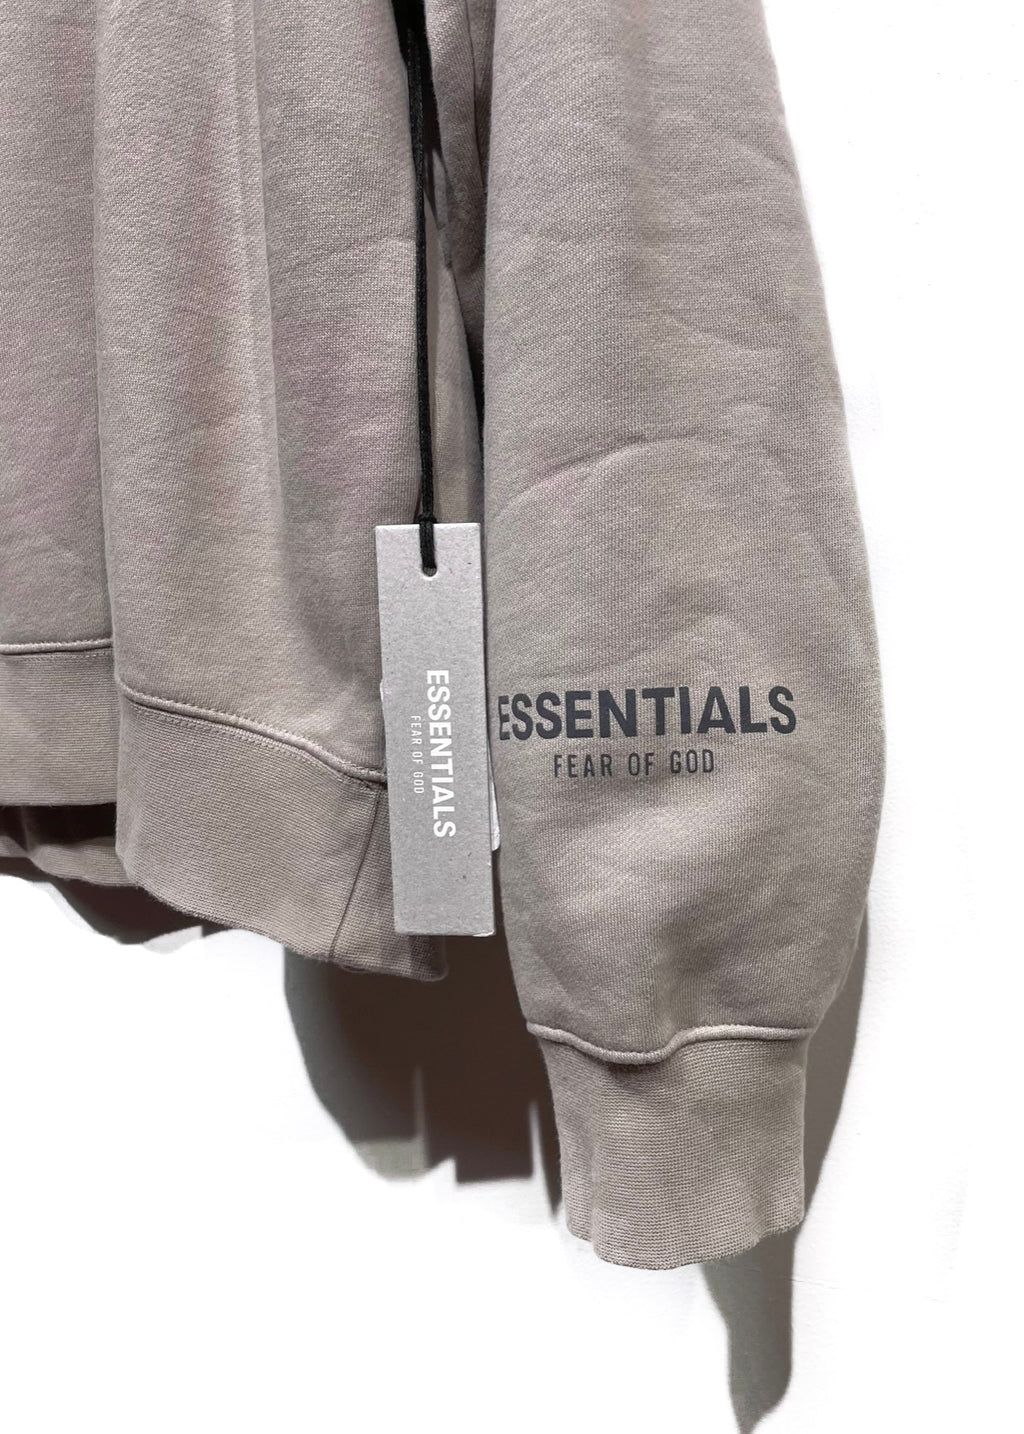 Essentials Fear of God Beige Sweatshirt